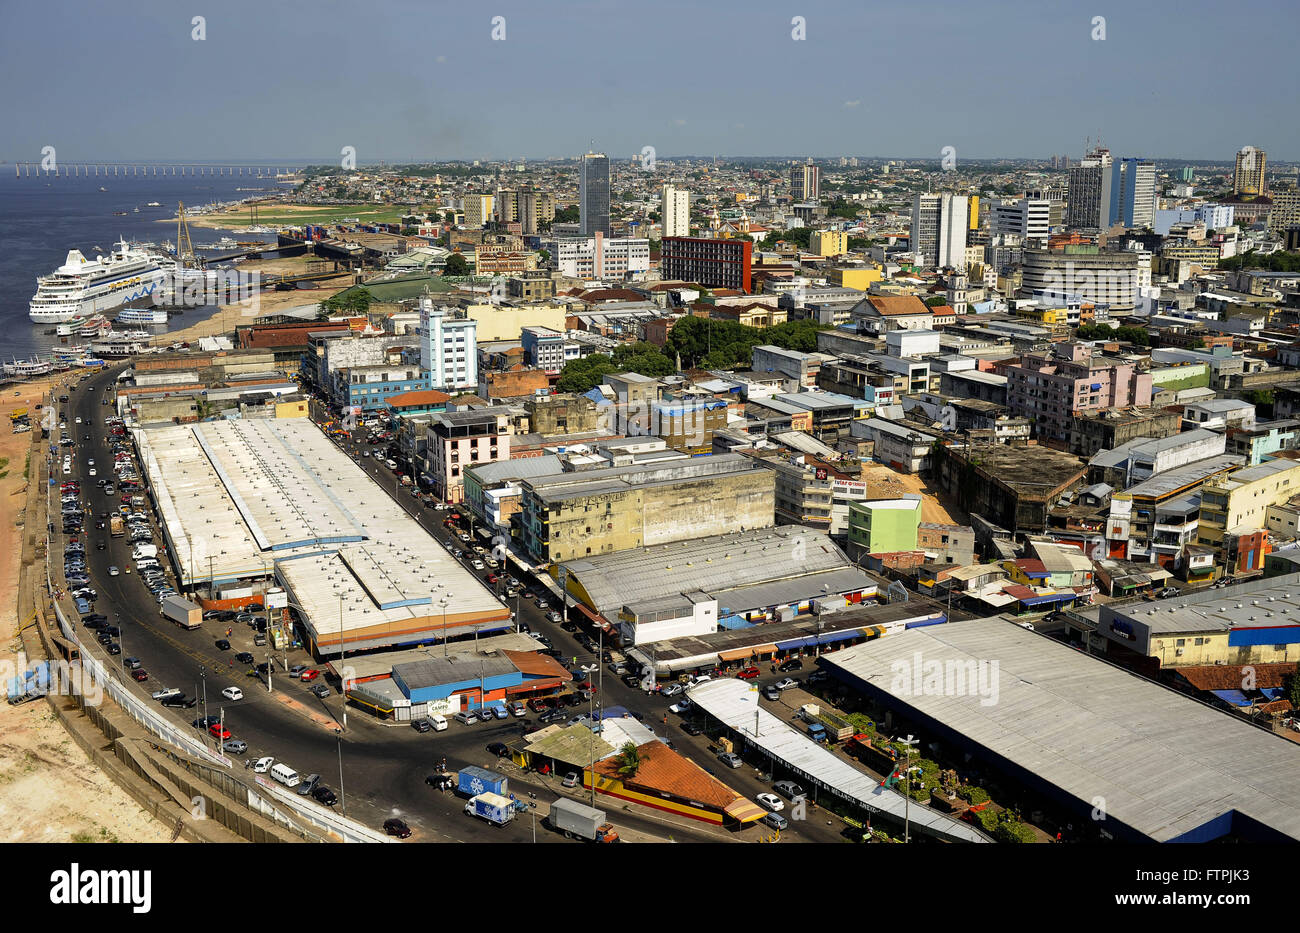 Aerial view of Manaus city center on the banks of the Rio Negro Stock Photo